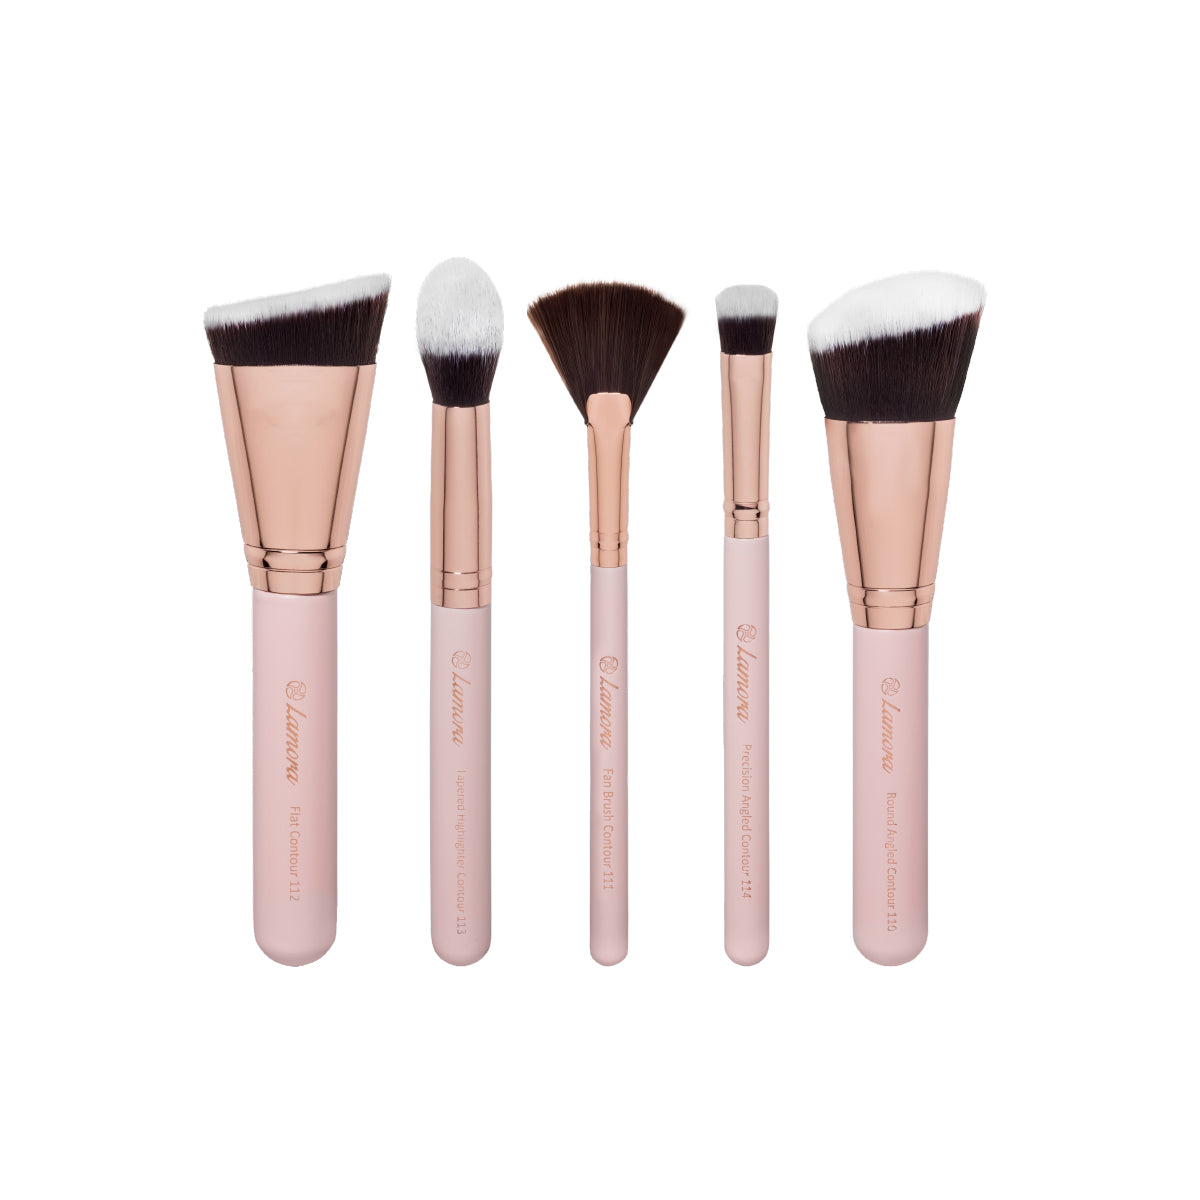 5pc Contouring Brush Set from Lamora Beauty